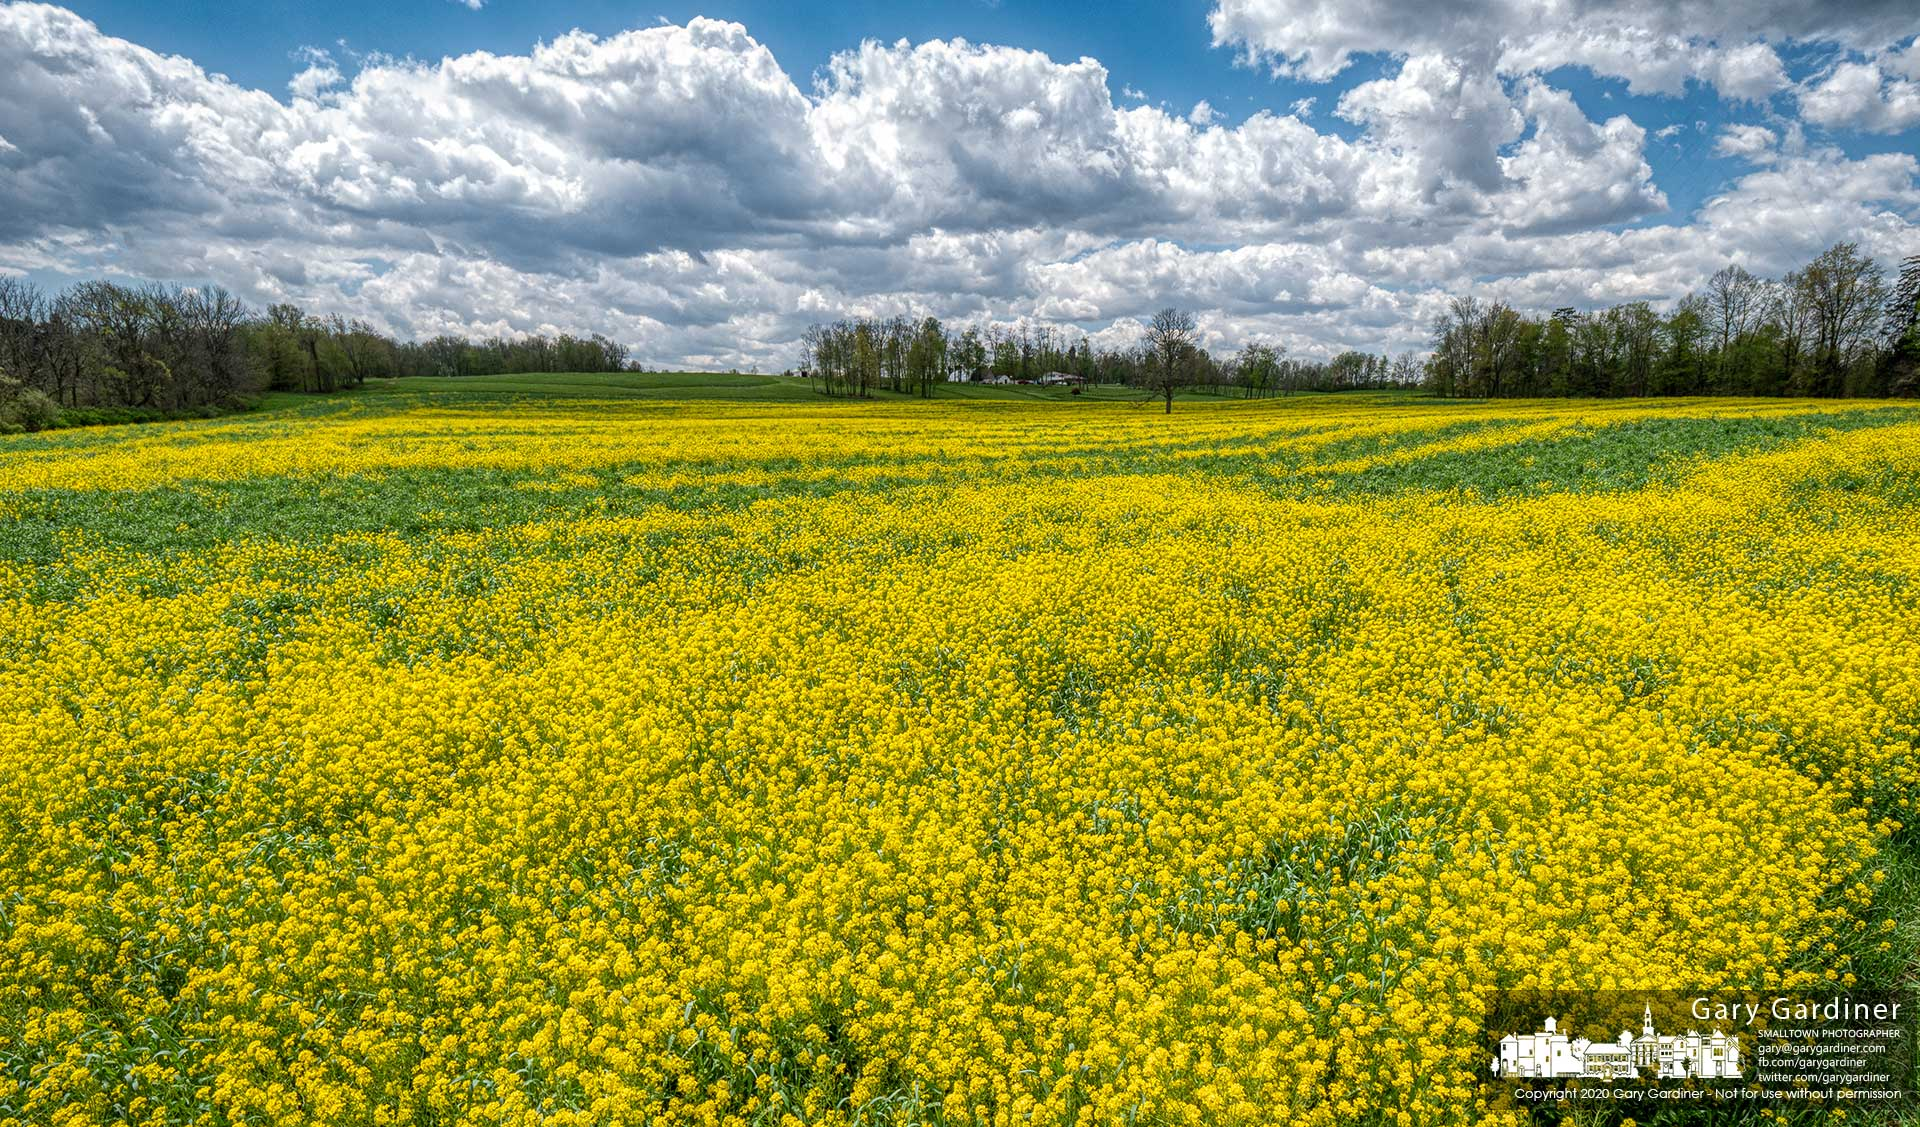 A crop of yellow mustard grows in a field along Morse Road in Licking County. My Final Photo for May 7, 2020.